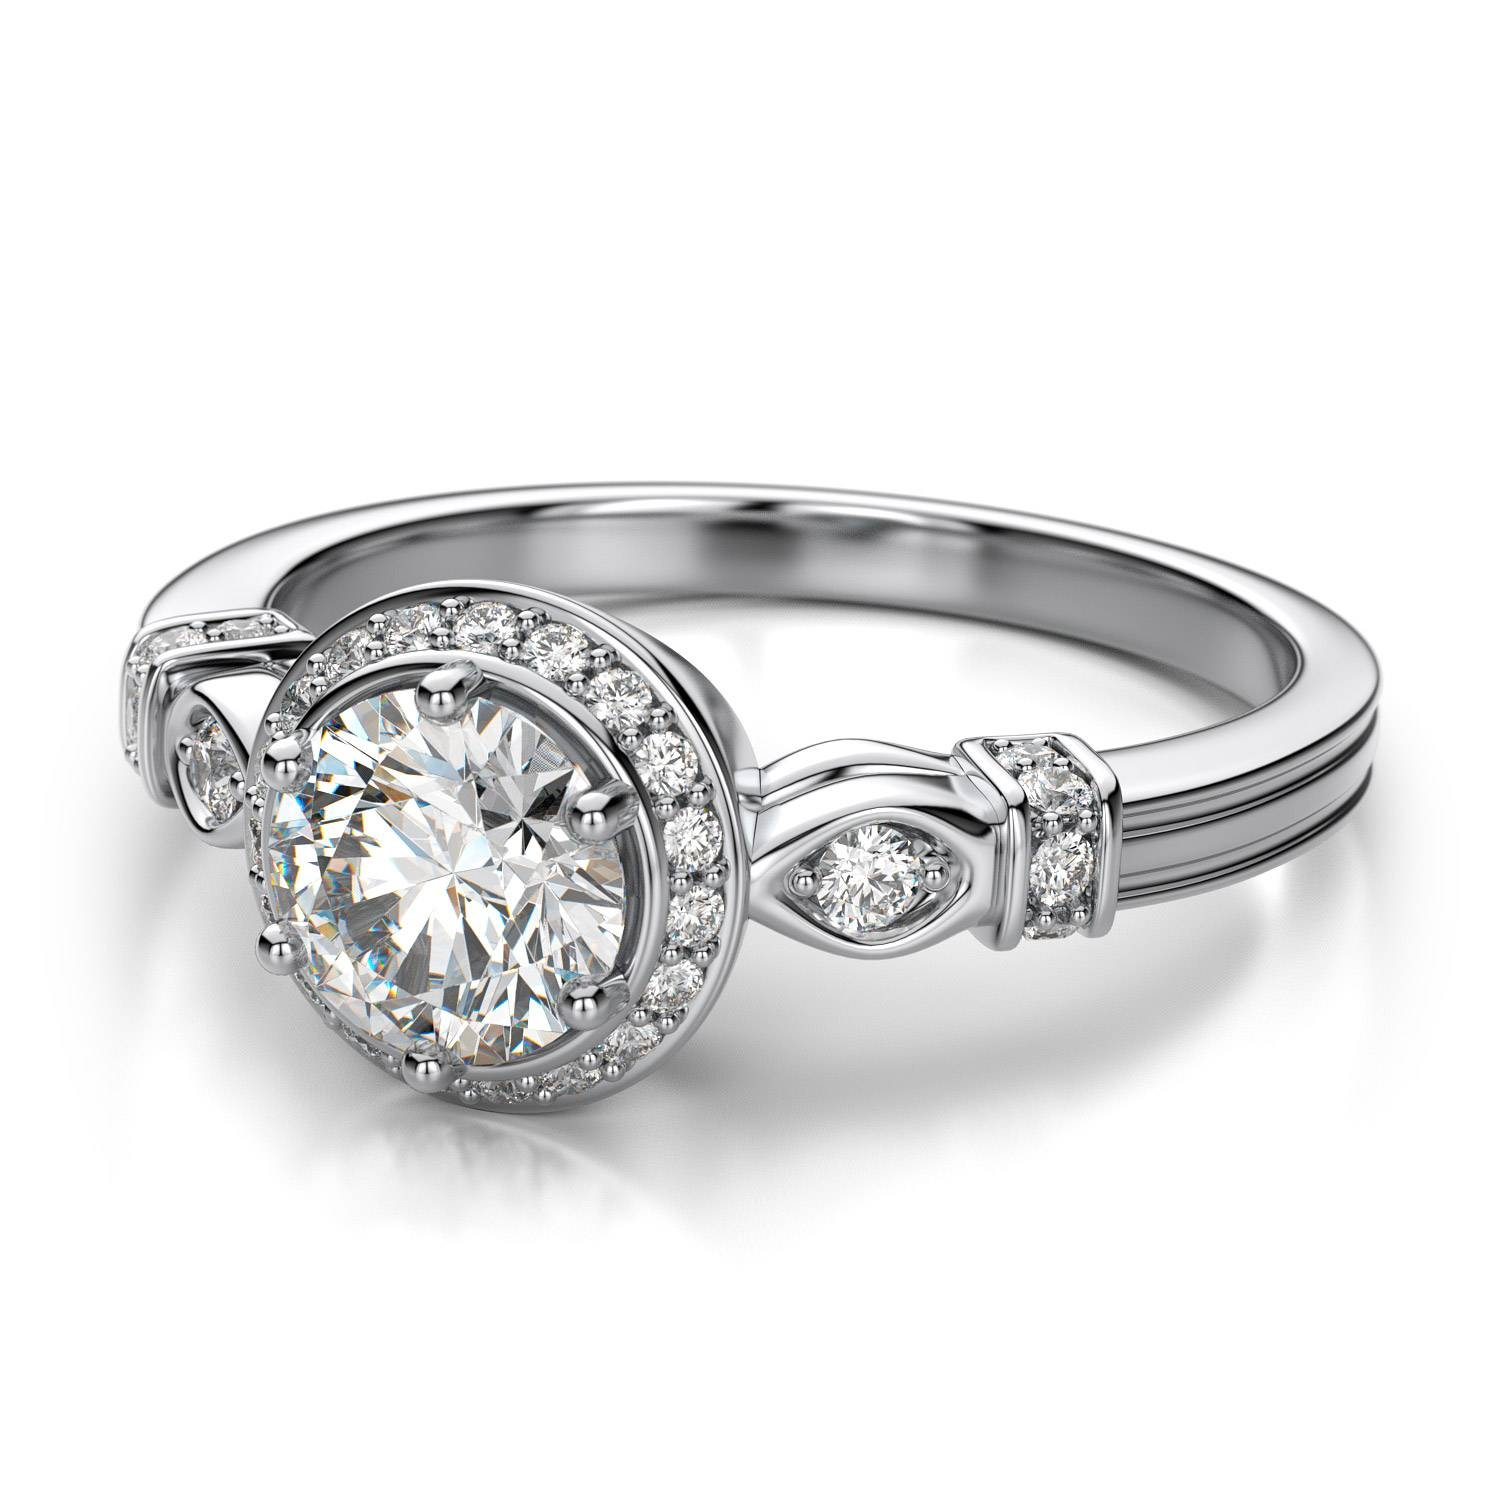 Round Prong Set Vintage Halo Diamond Engagement Ring In 14K White Within Vintage Halo Engagement Rings (View 7 of 15)